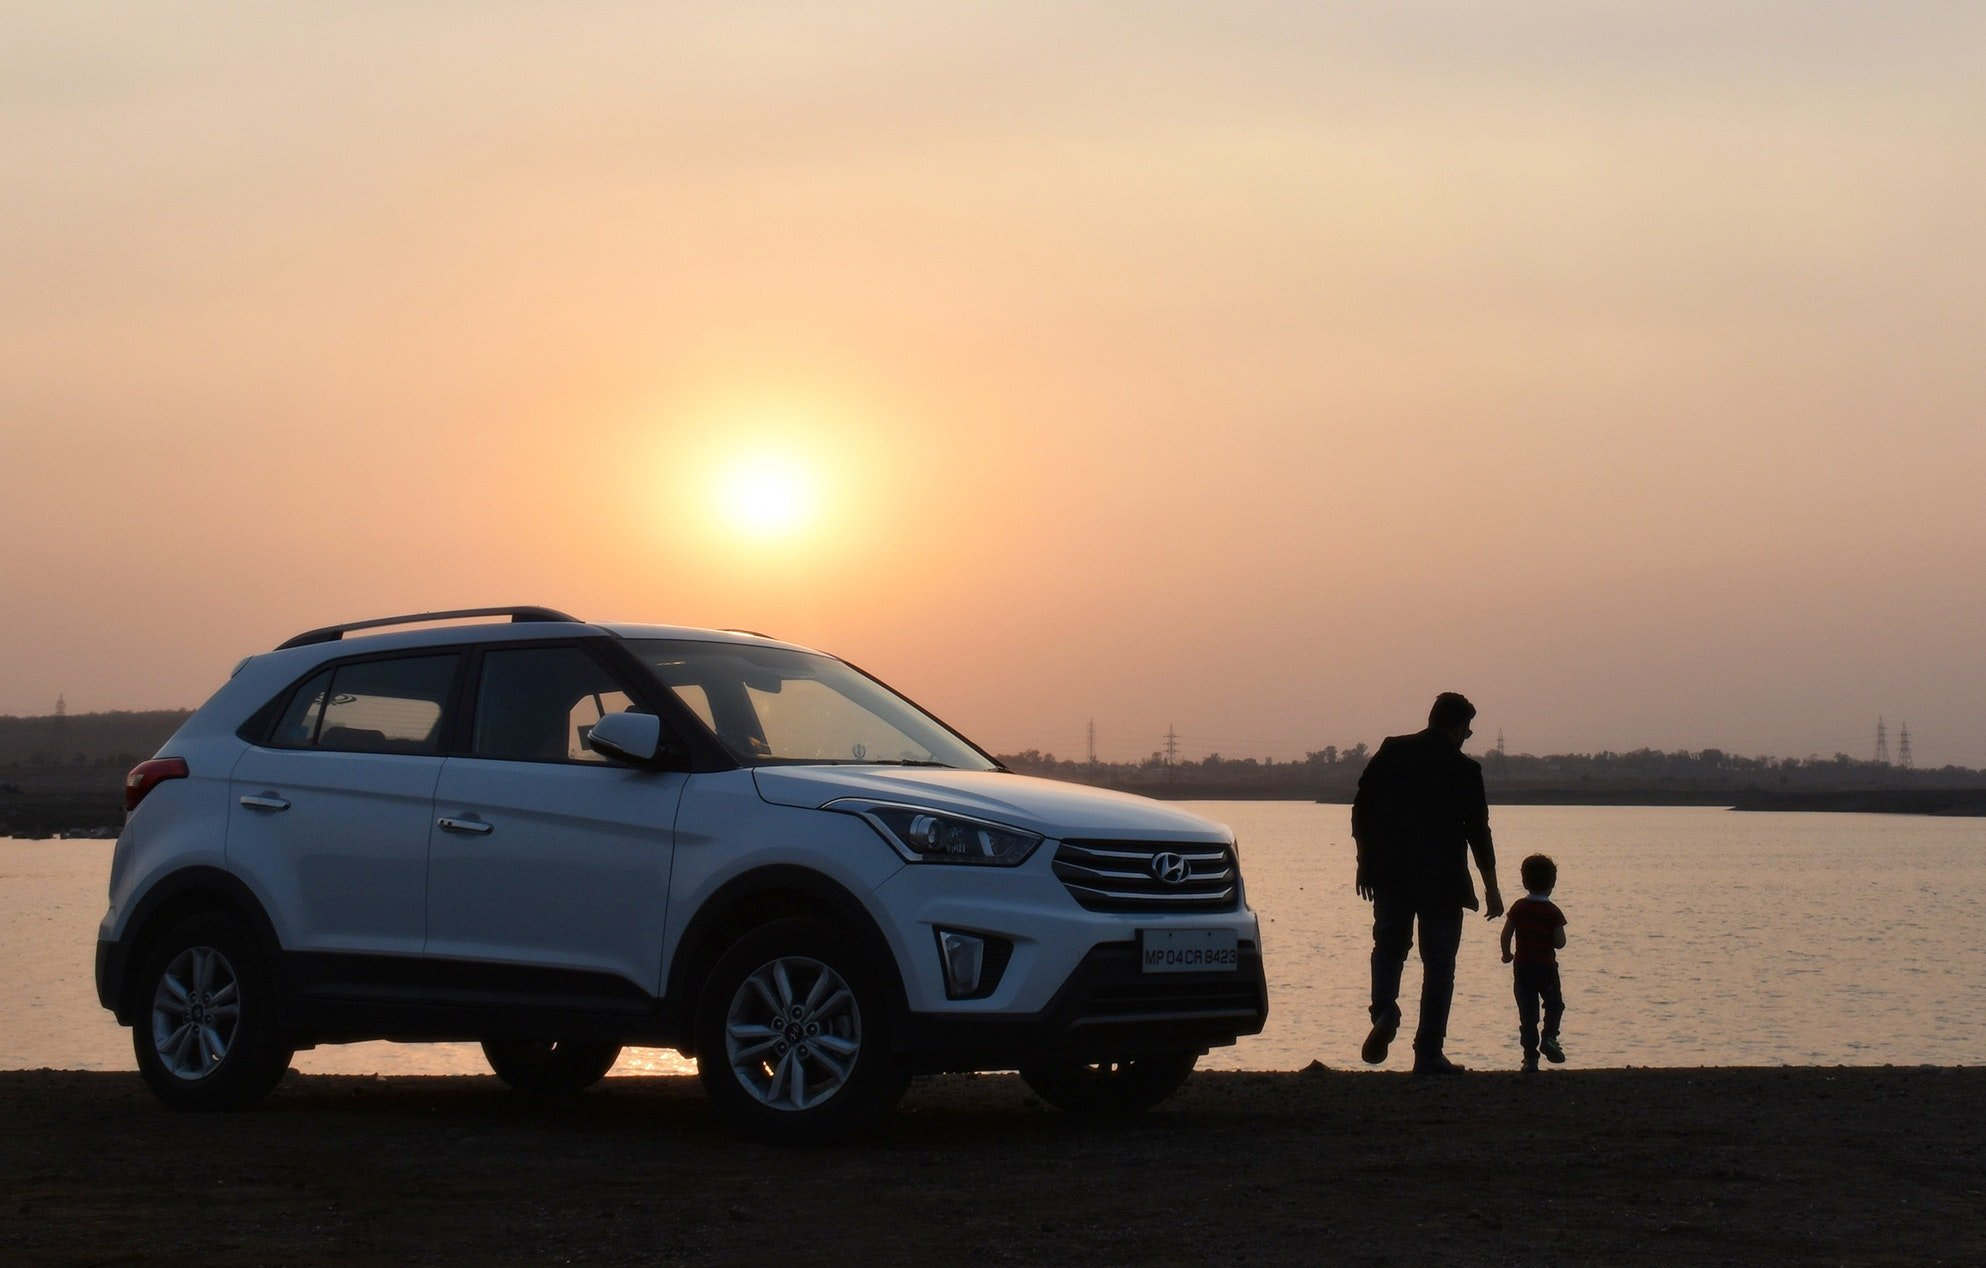 Pictured - A silhouette of a man and child near a white Hyundai Tucson SUV during the sunset | Source: Pexels